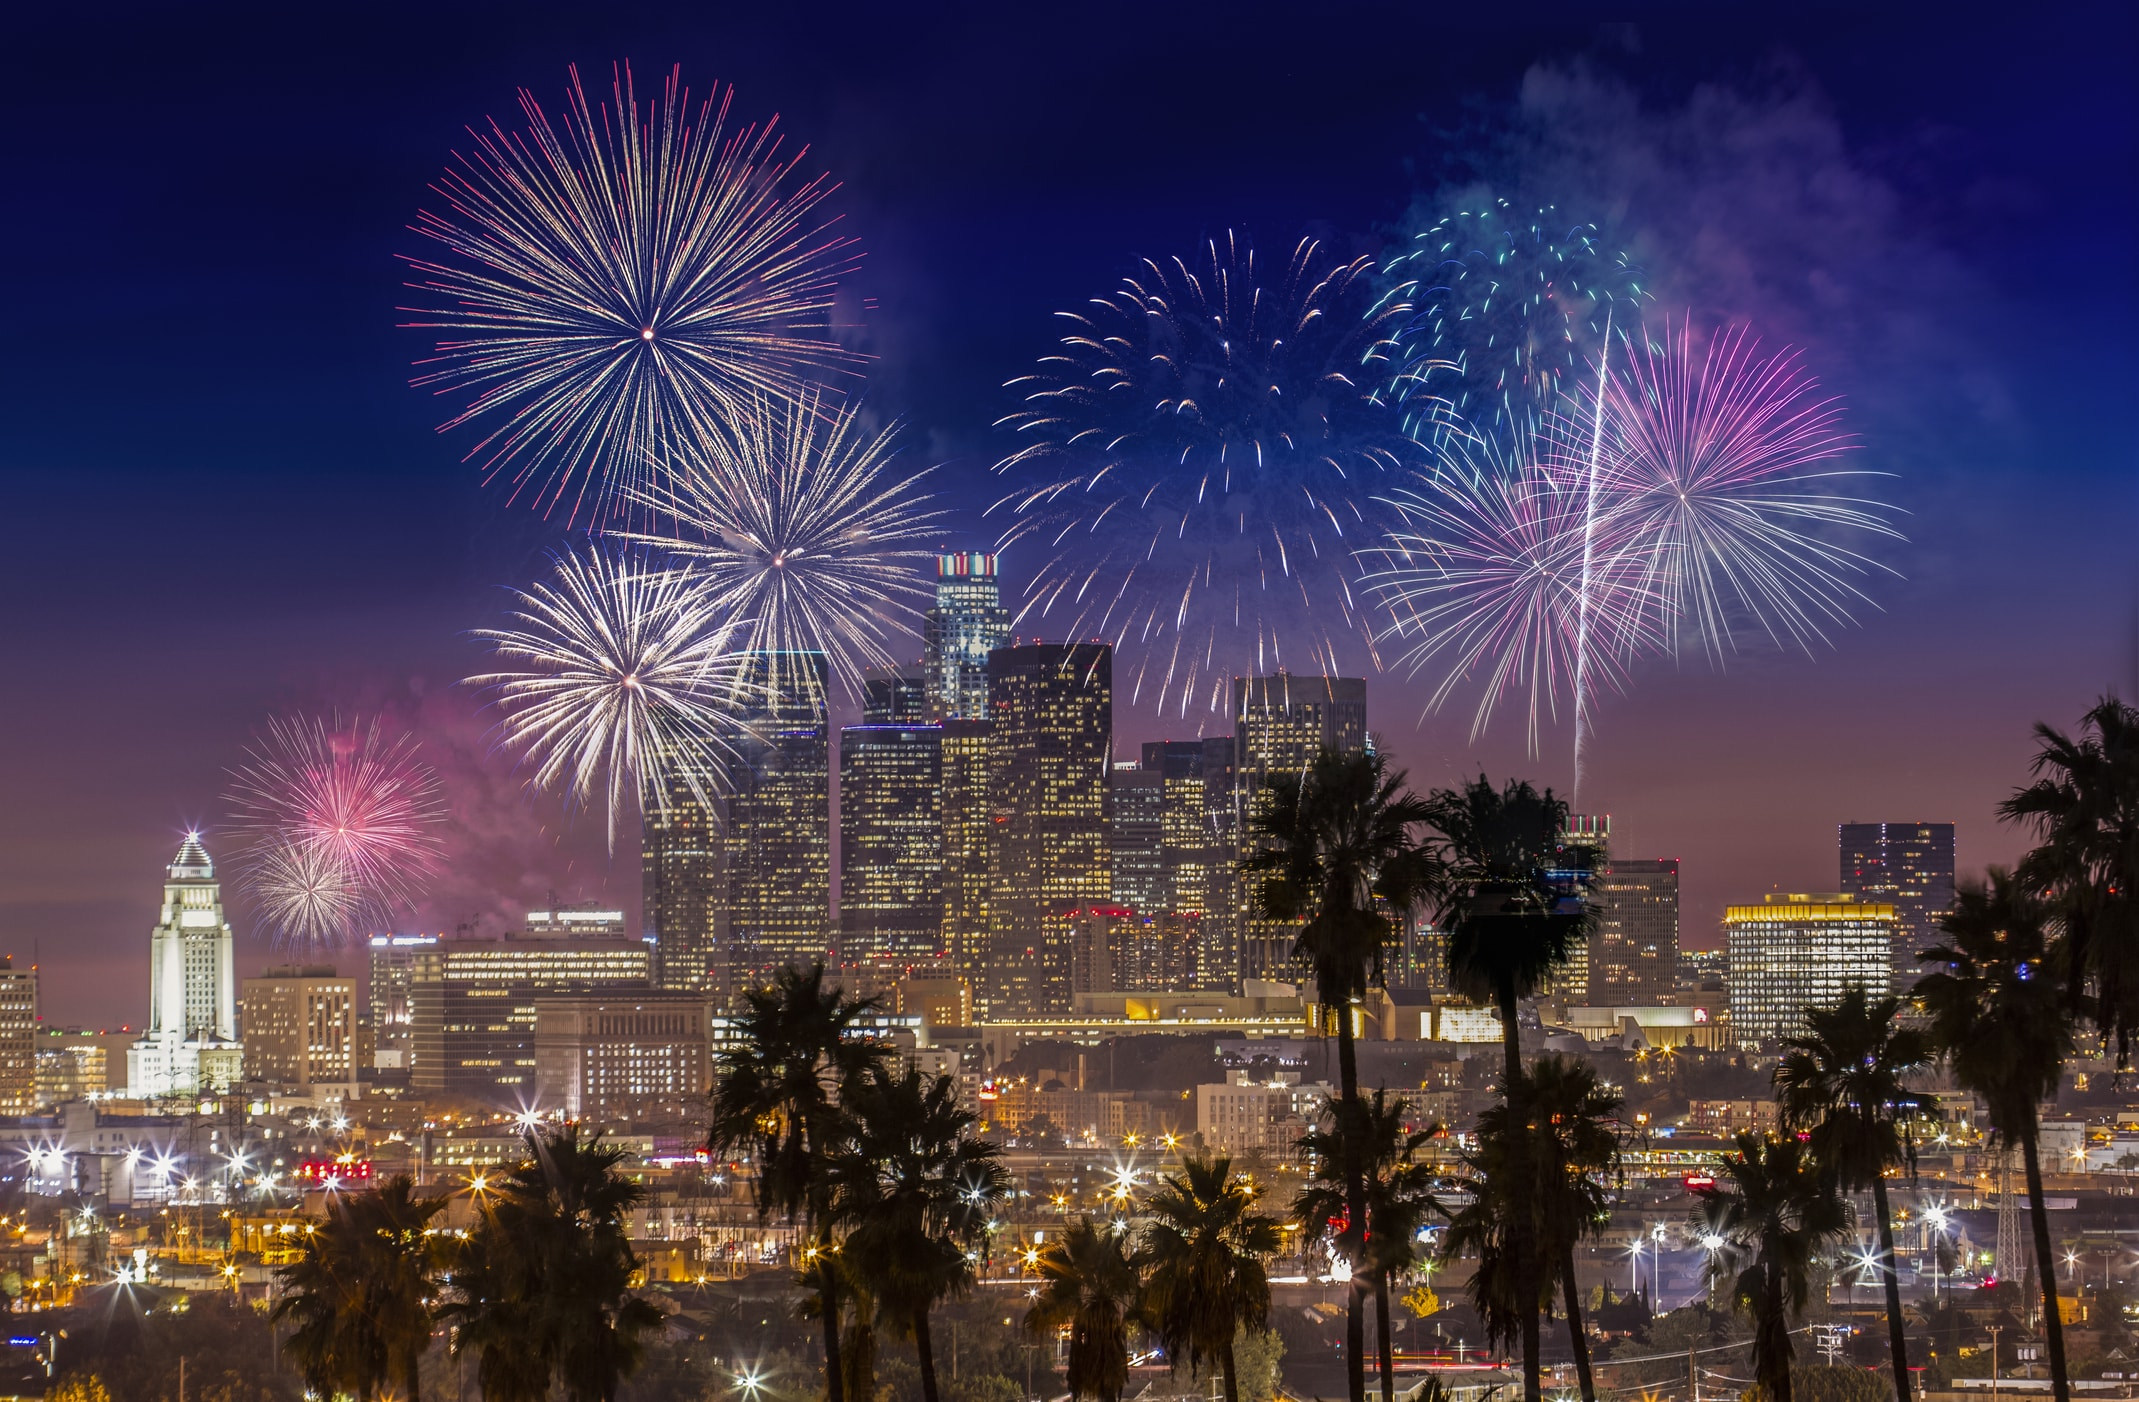 How to Photograph Fireworks in 3 Easy Steps